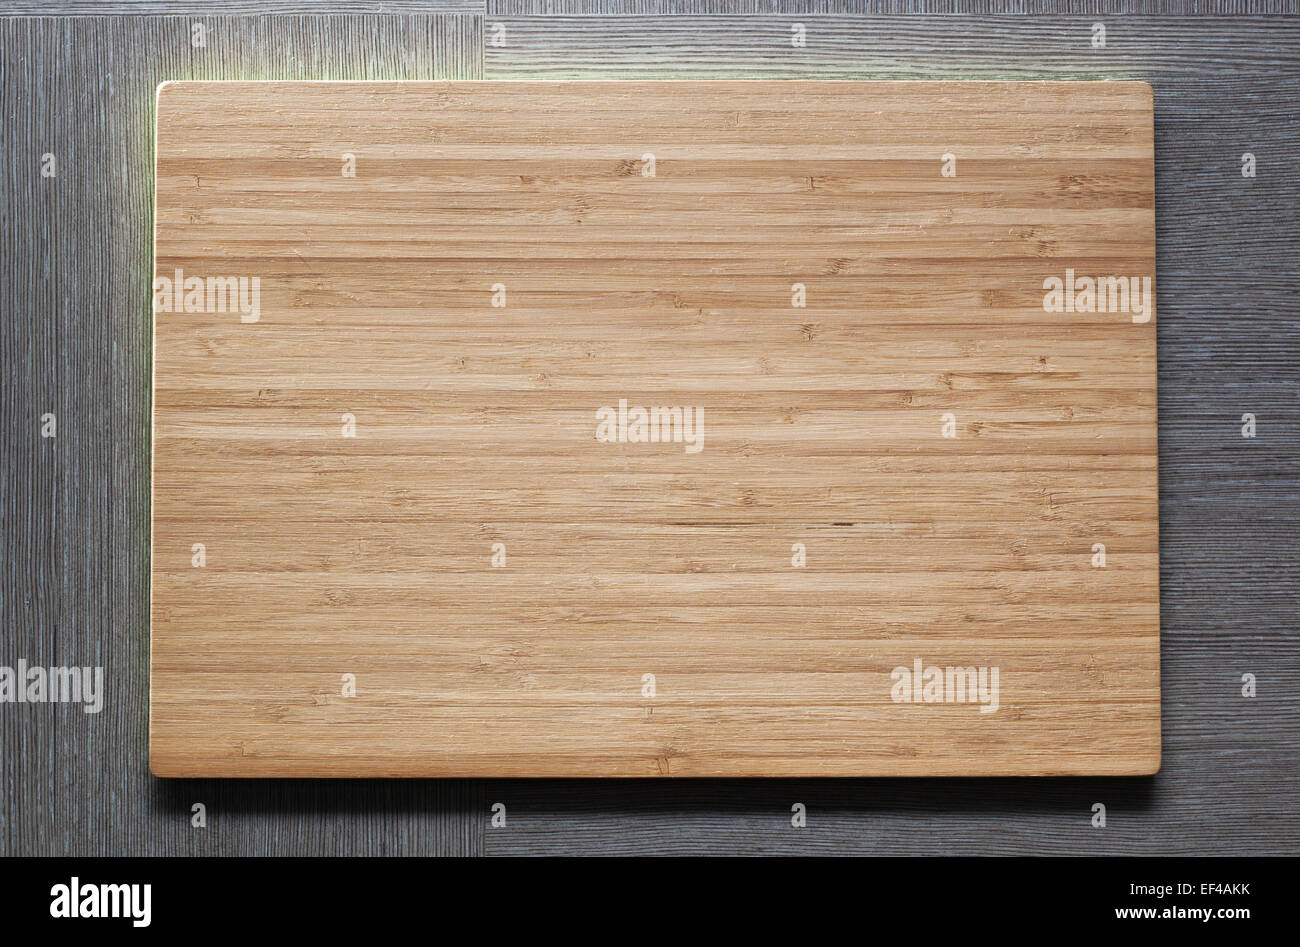 New wooden plate with empty textspace. - Stock Image